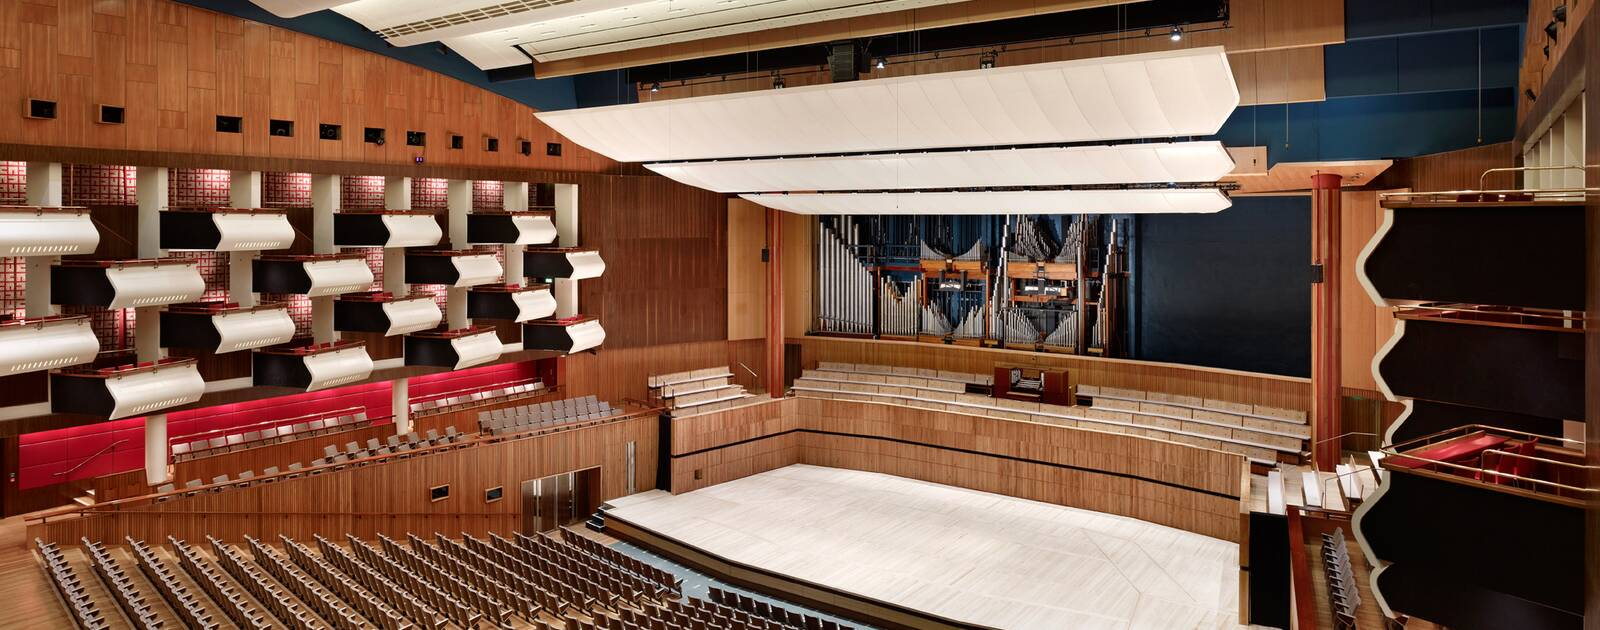 Empty view of the Royal Festival Hall auditorium at the Southbank Centre